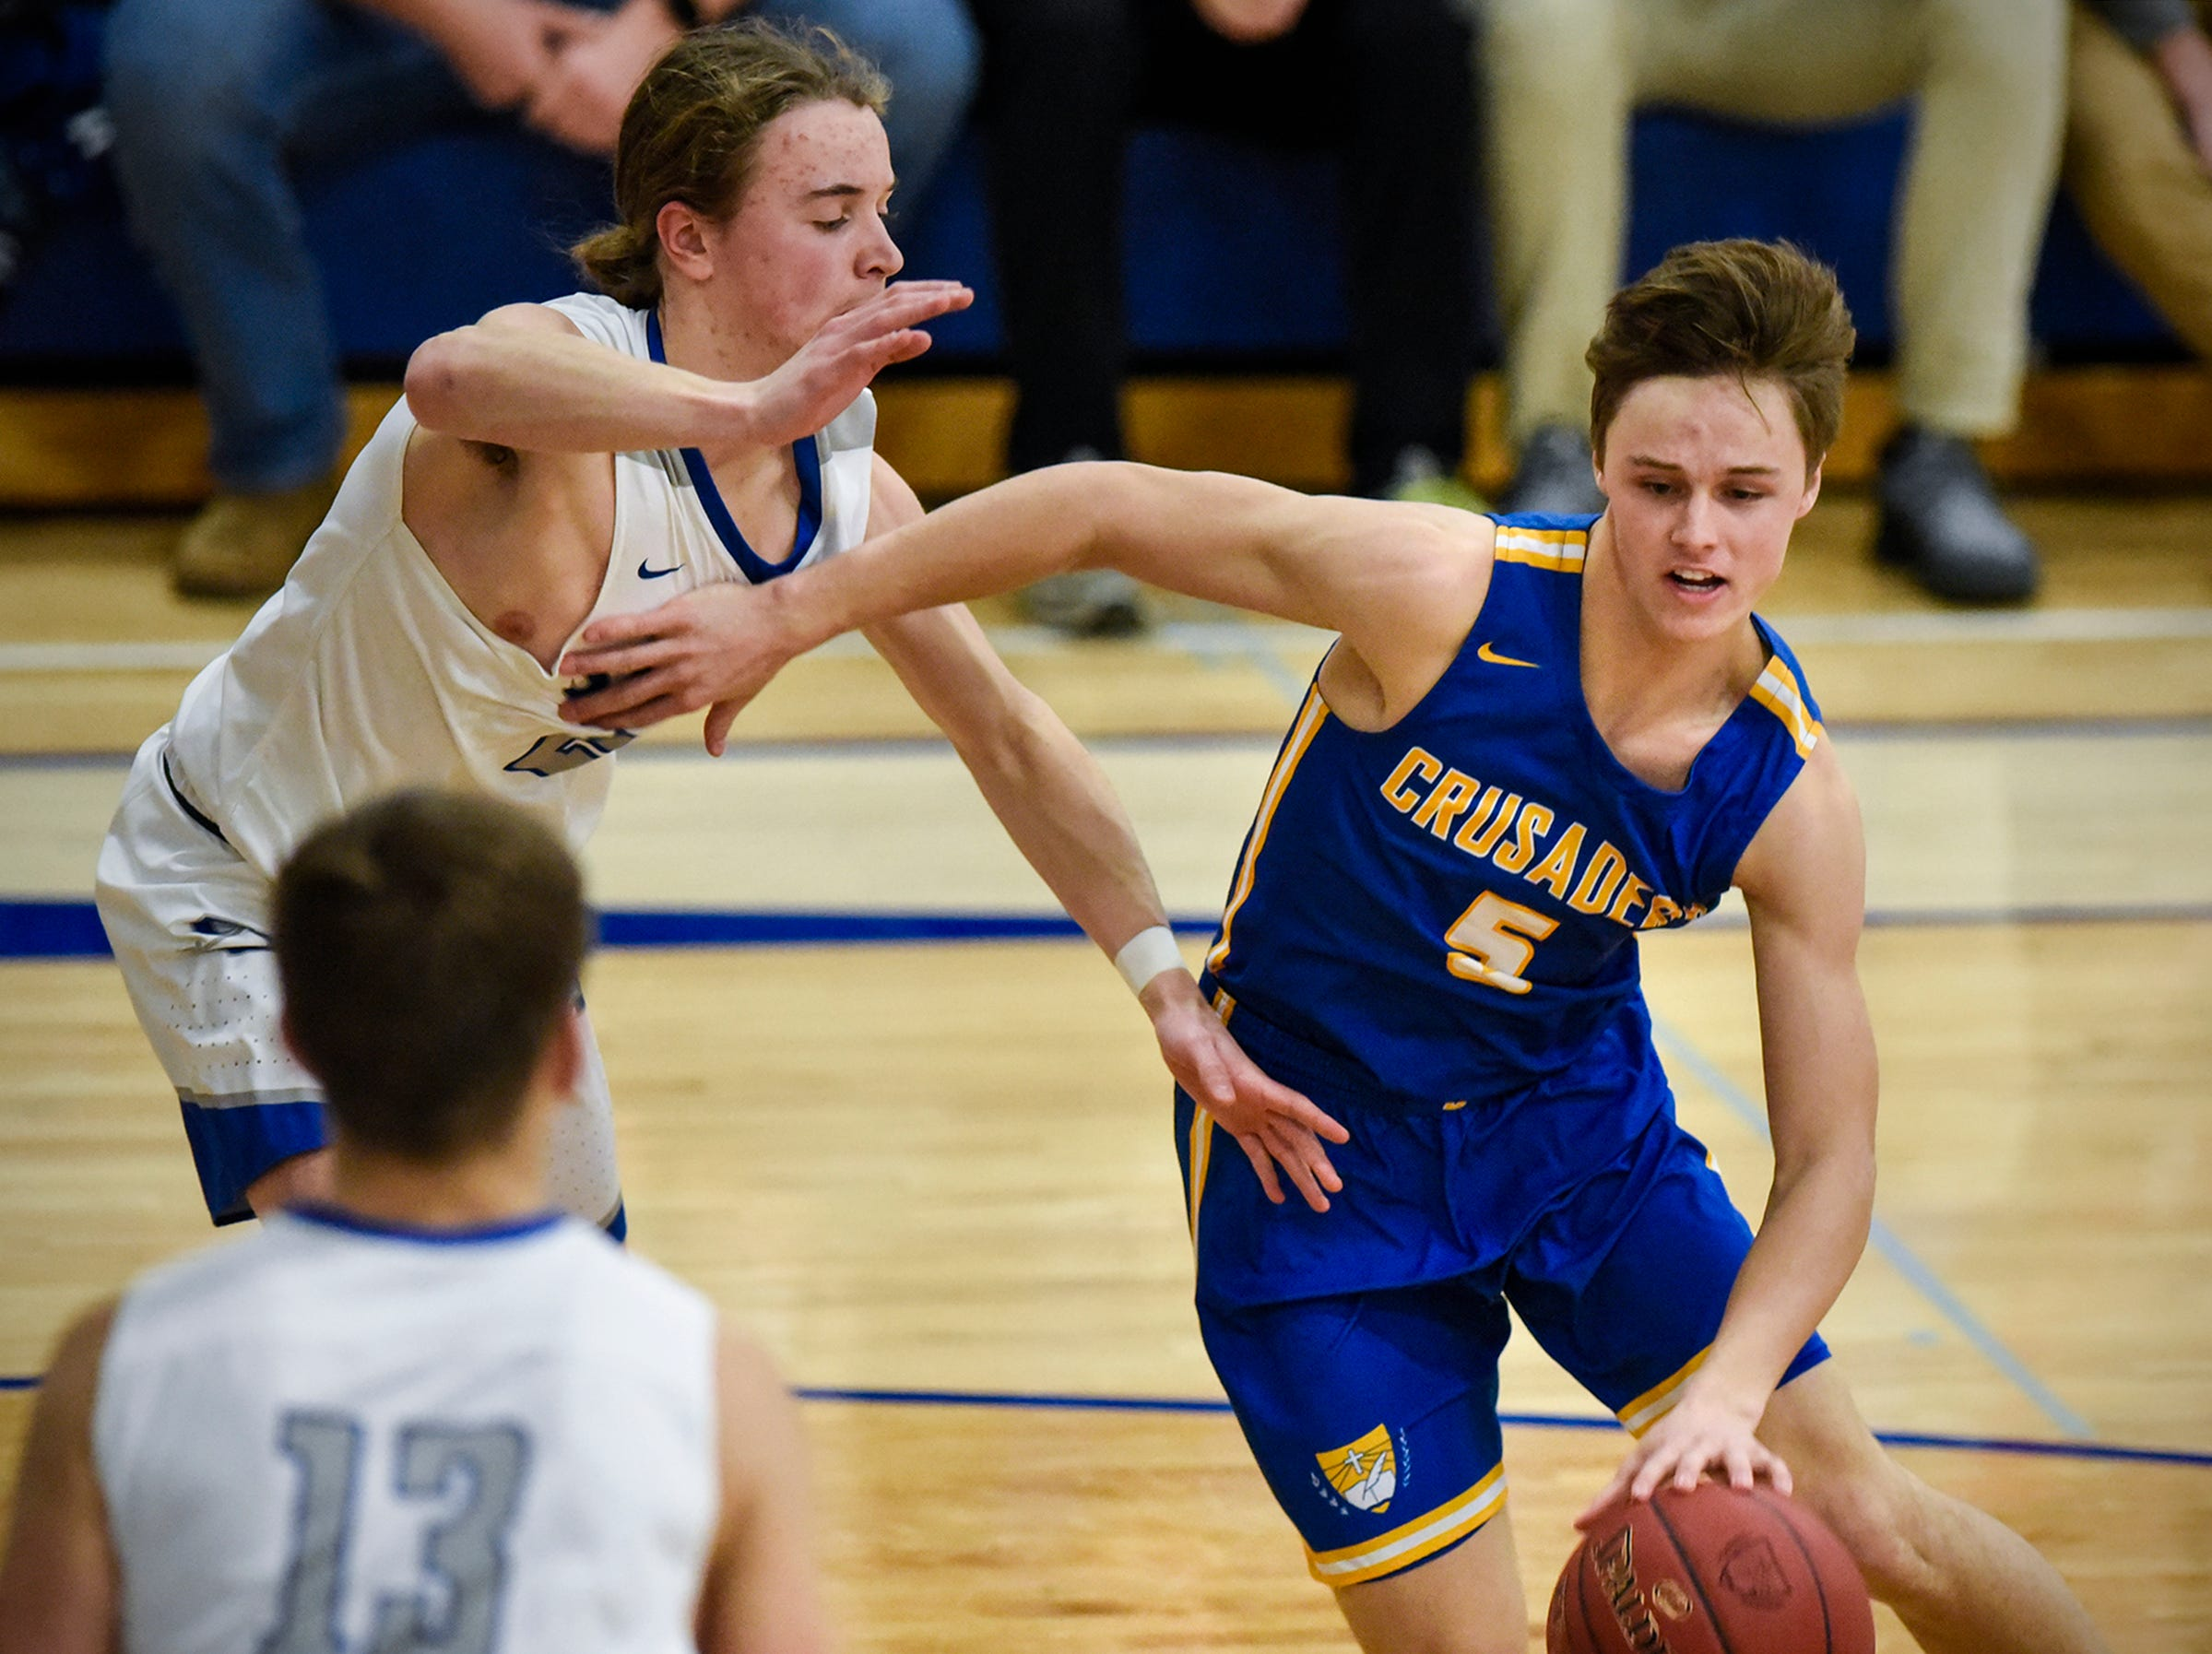 Cathedral's Jackson Jangula drives to the basket during the game Tuesday, Jan. 8, against Sartell at Cathedral High School in St. Cloud.